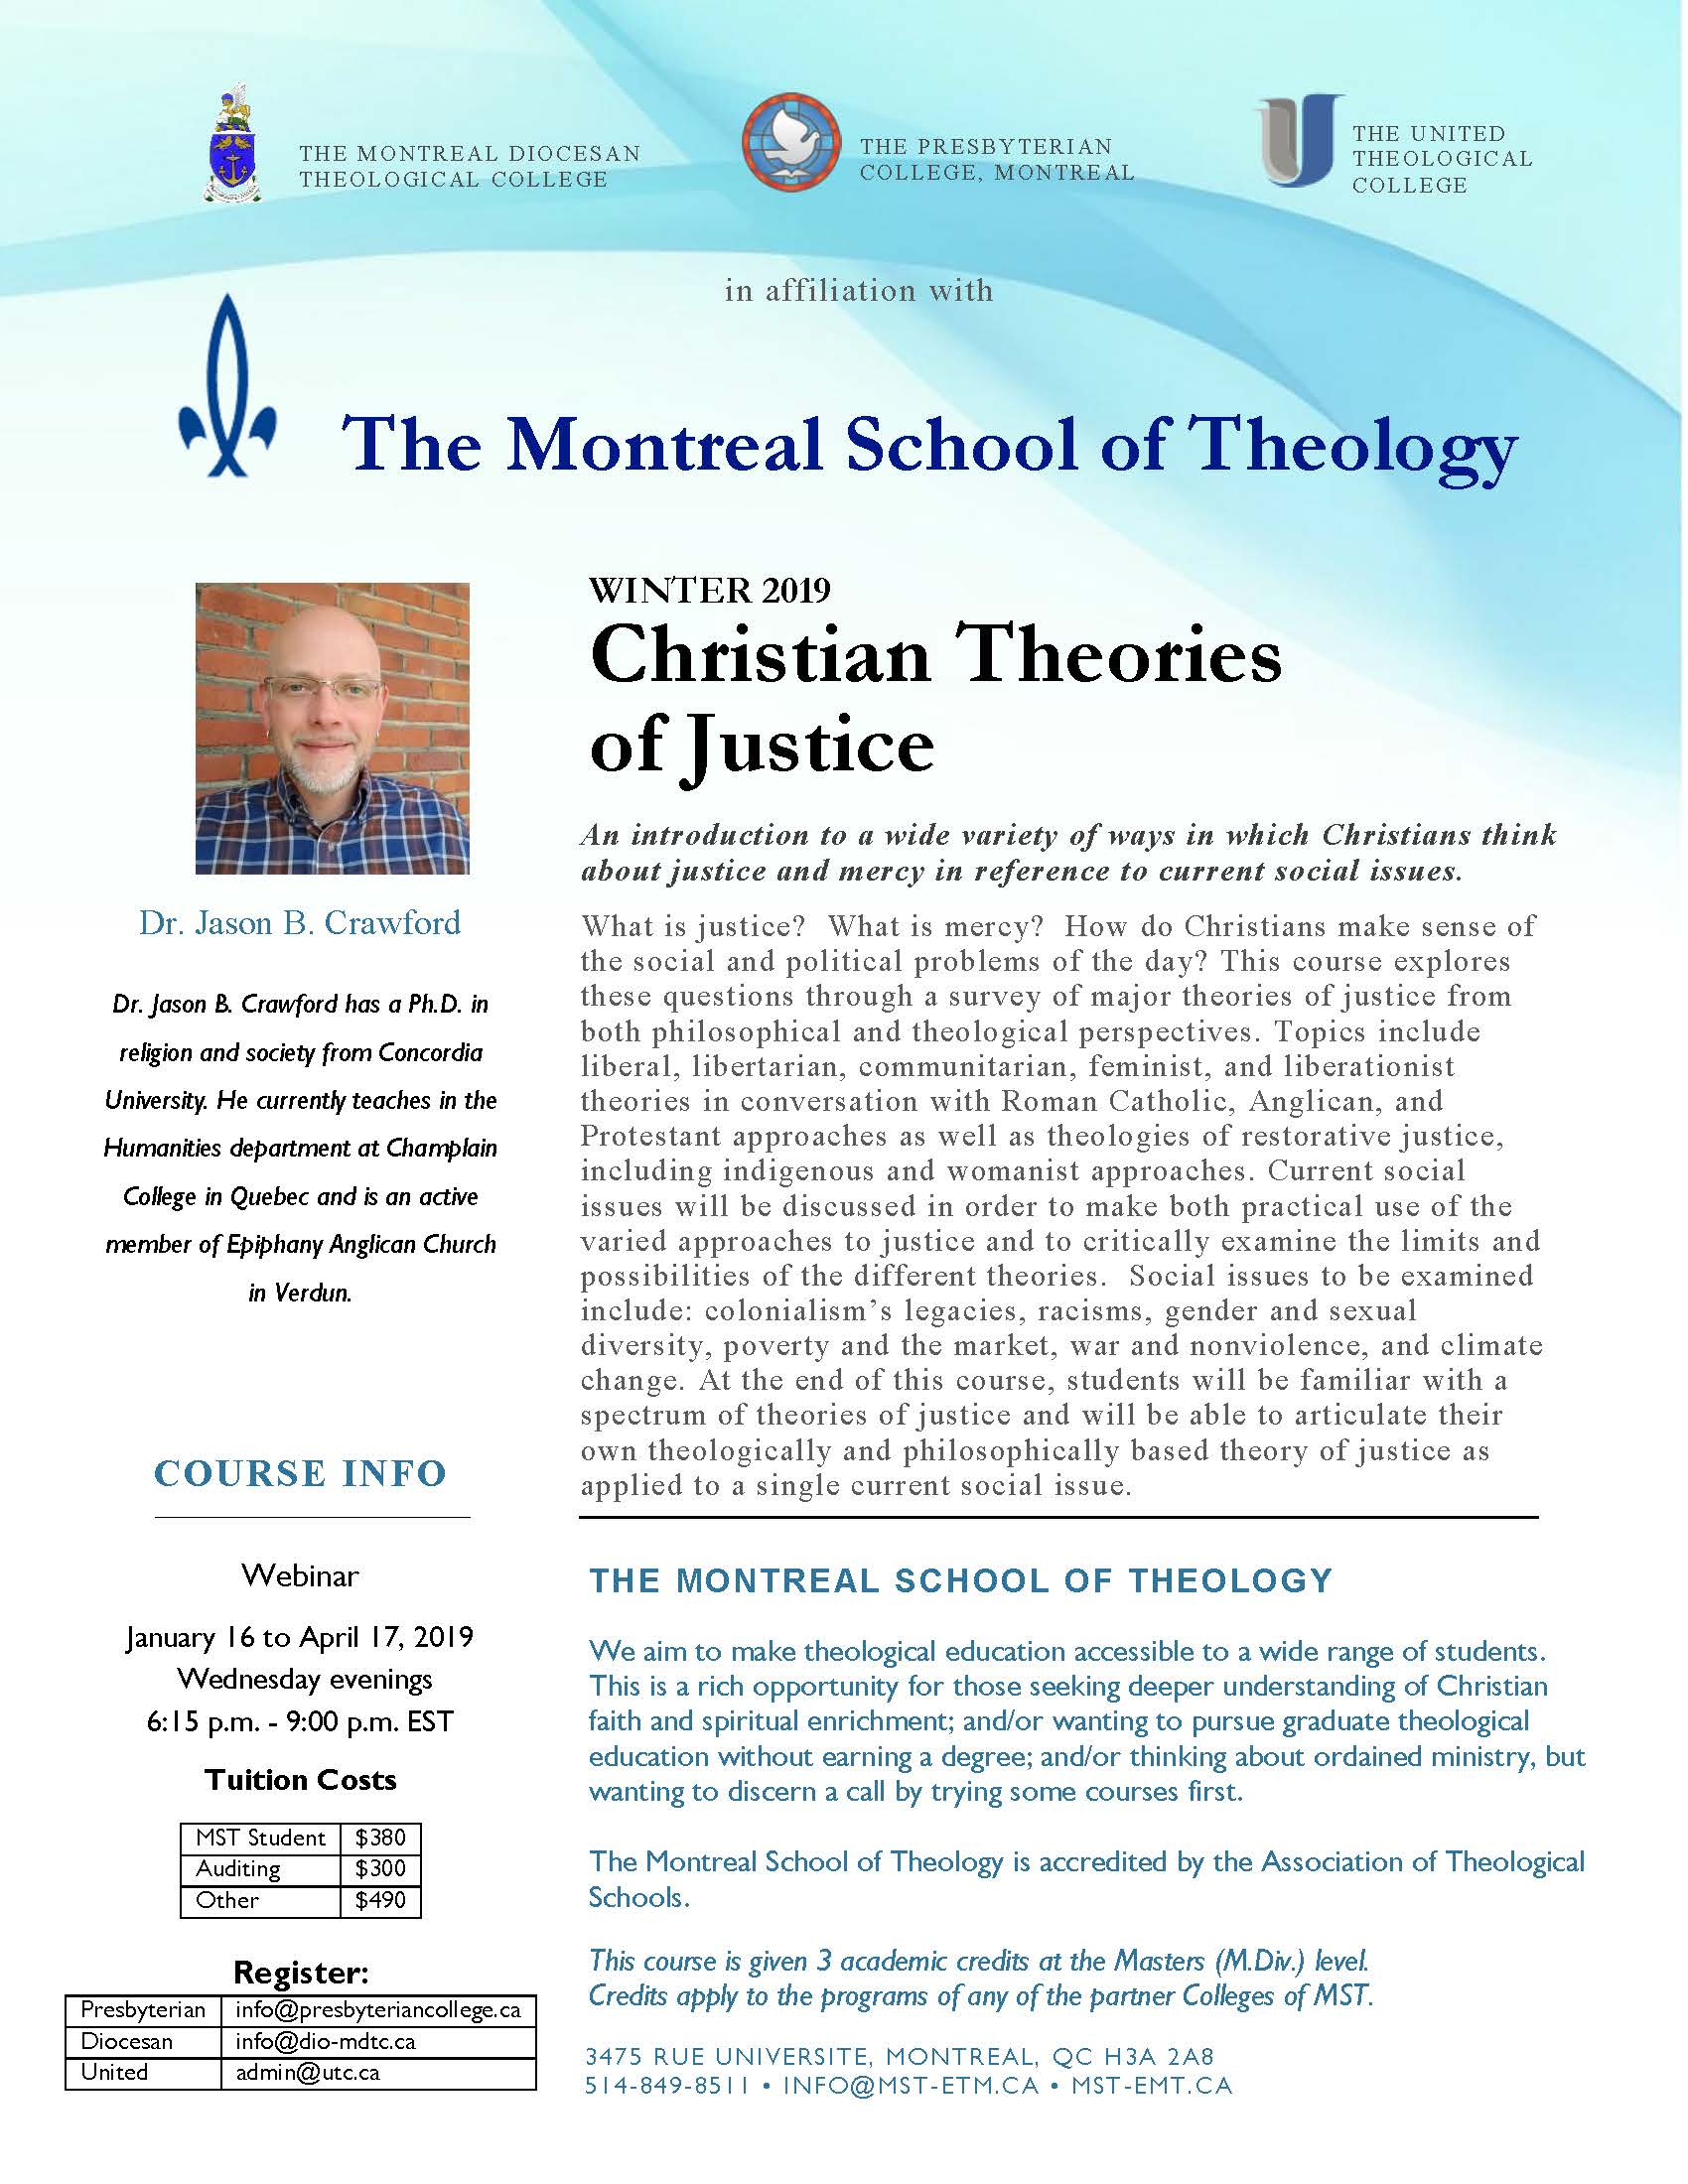 Winter 2019 Course: Christian Theories of Justice